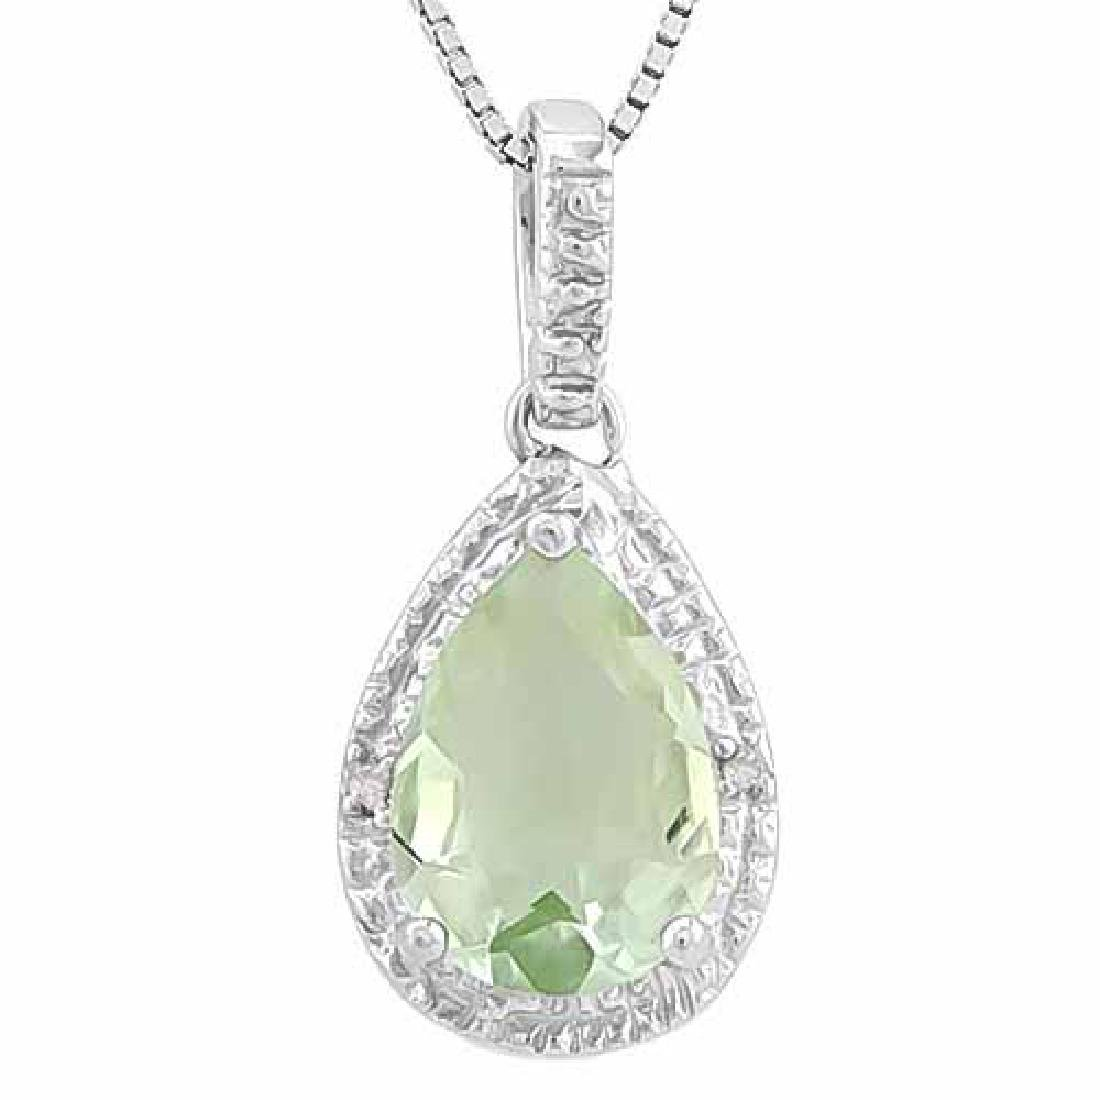 2.34 CT GREEN AMETHYST & 2PCS GENUINE DIAMOND 925 STERL